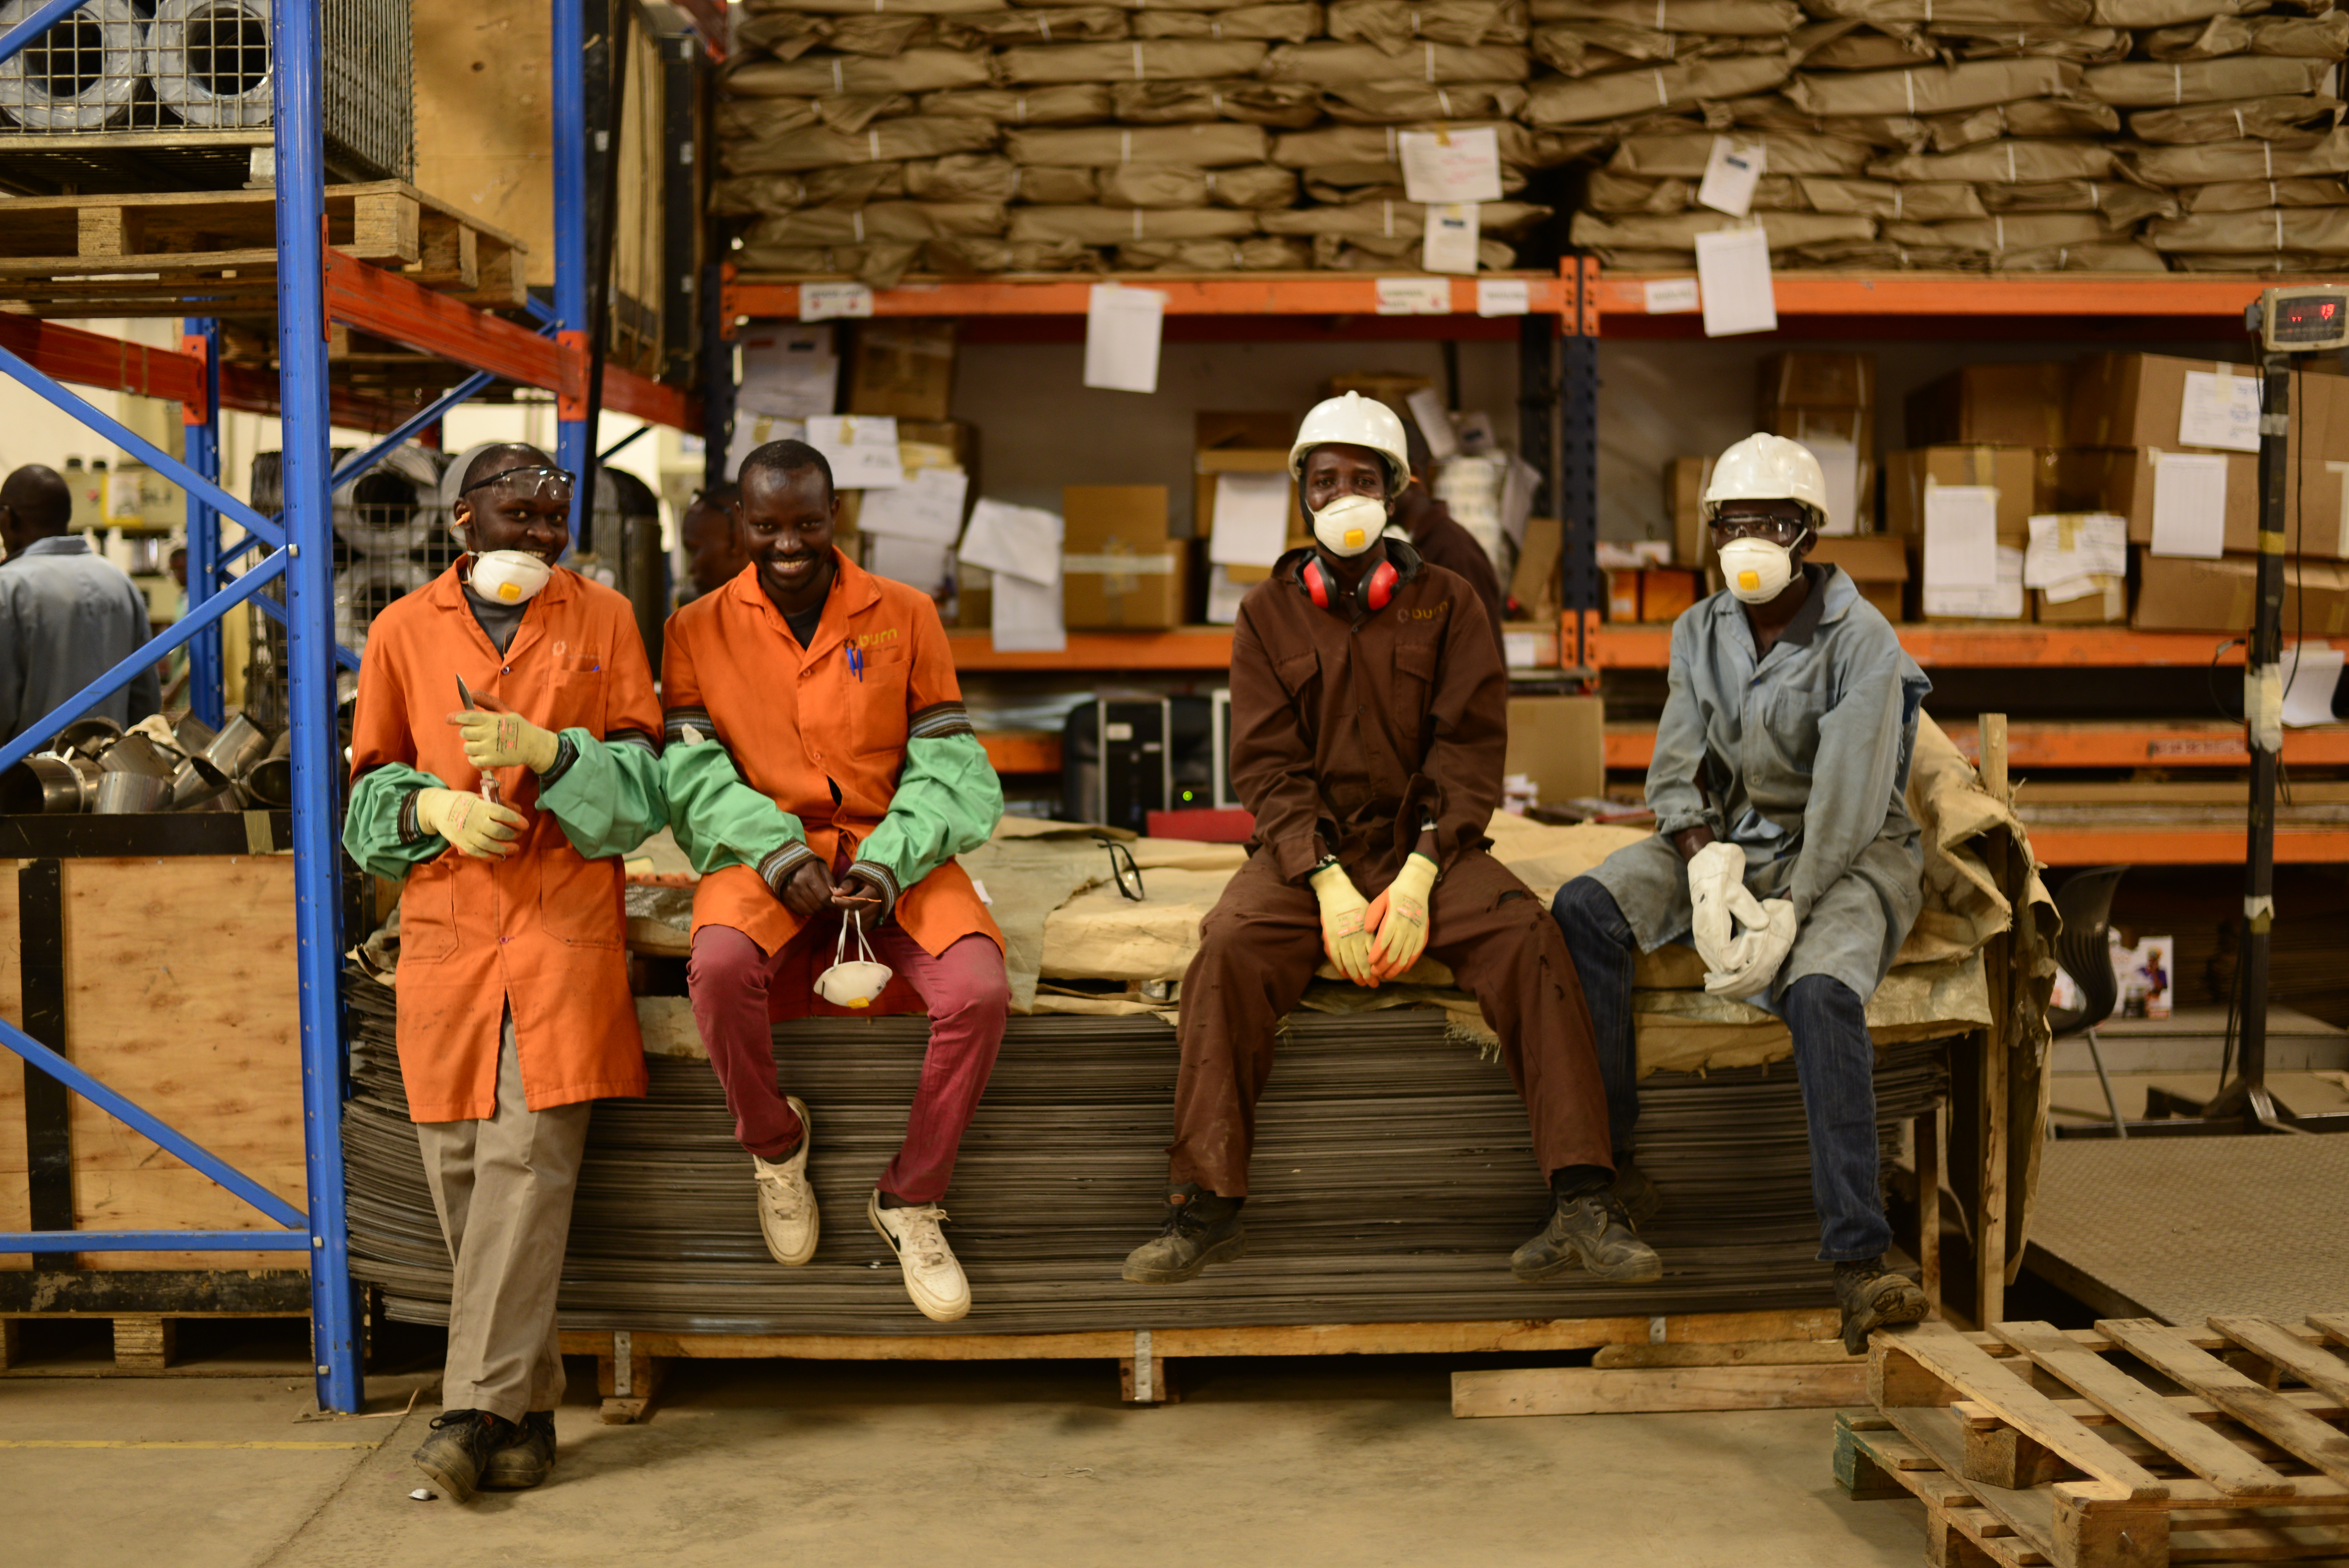 Workers smiling as they take a break on the factory floor